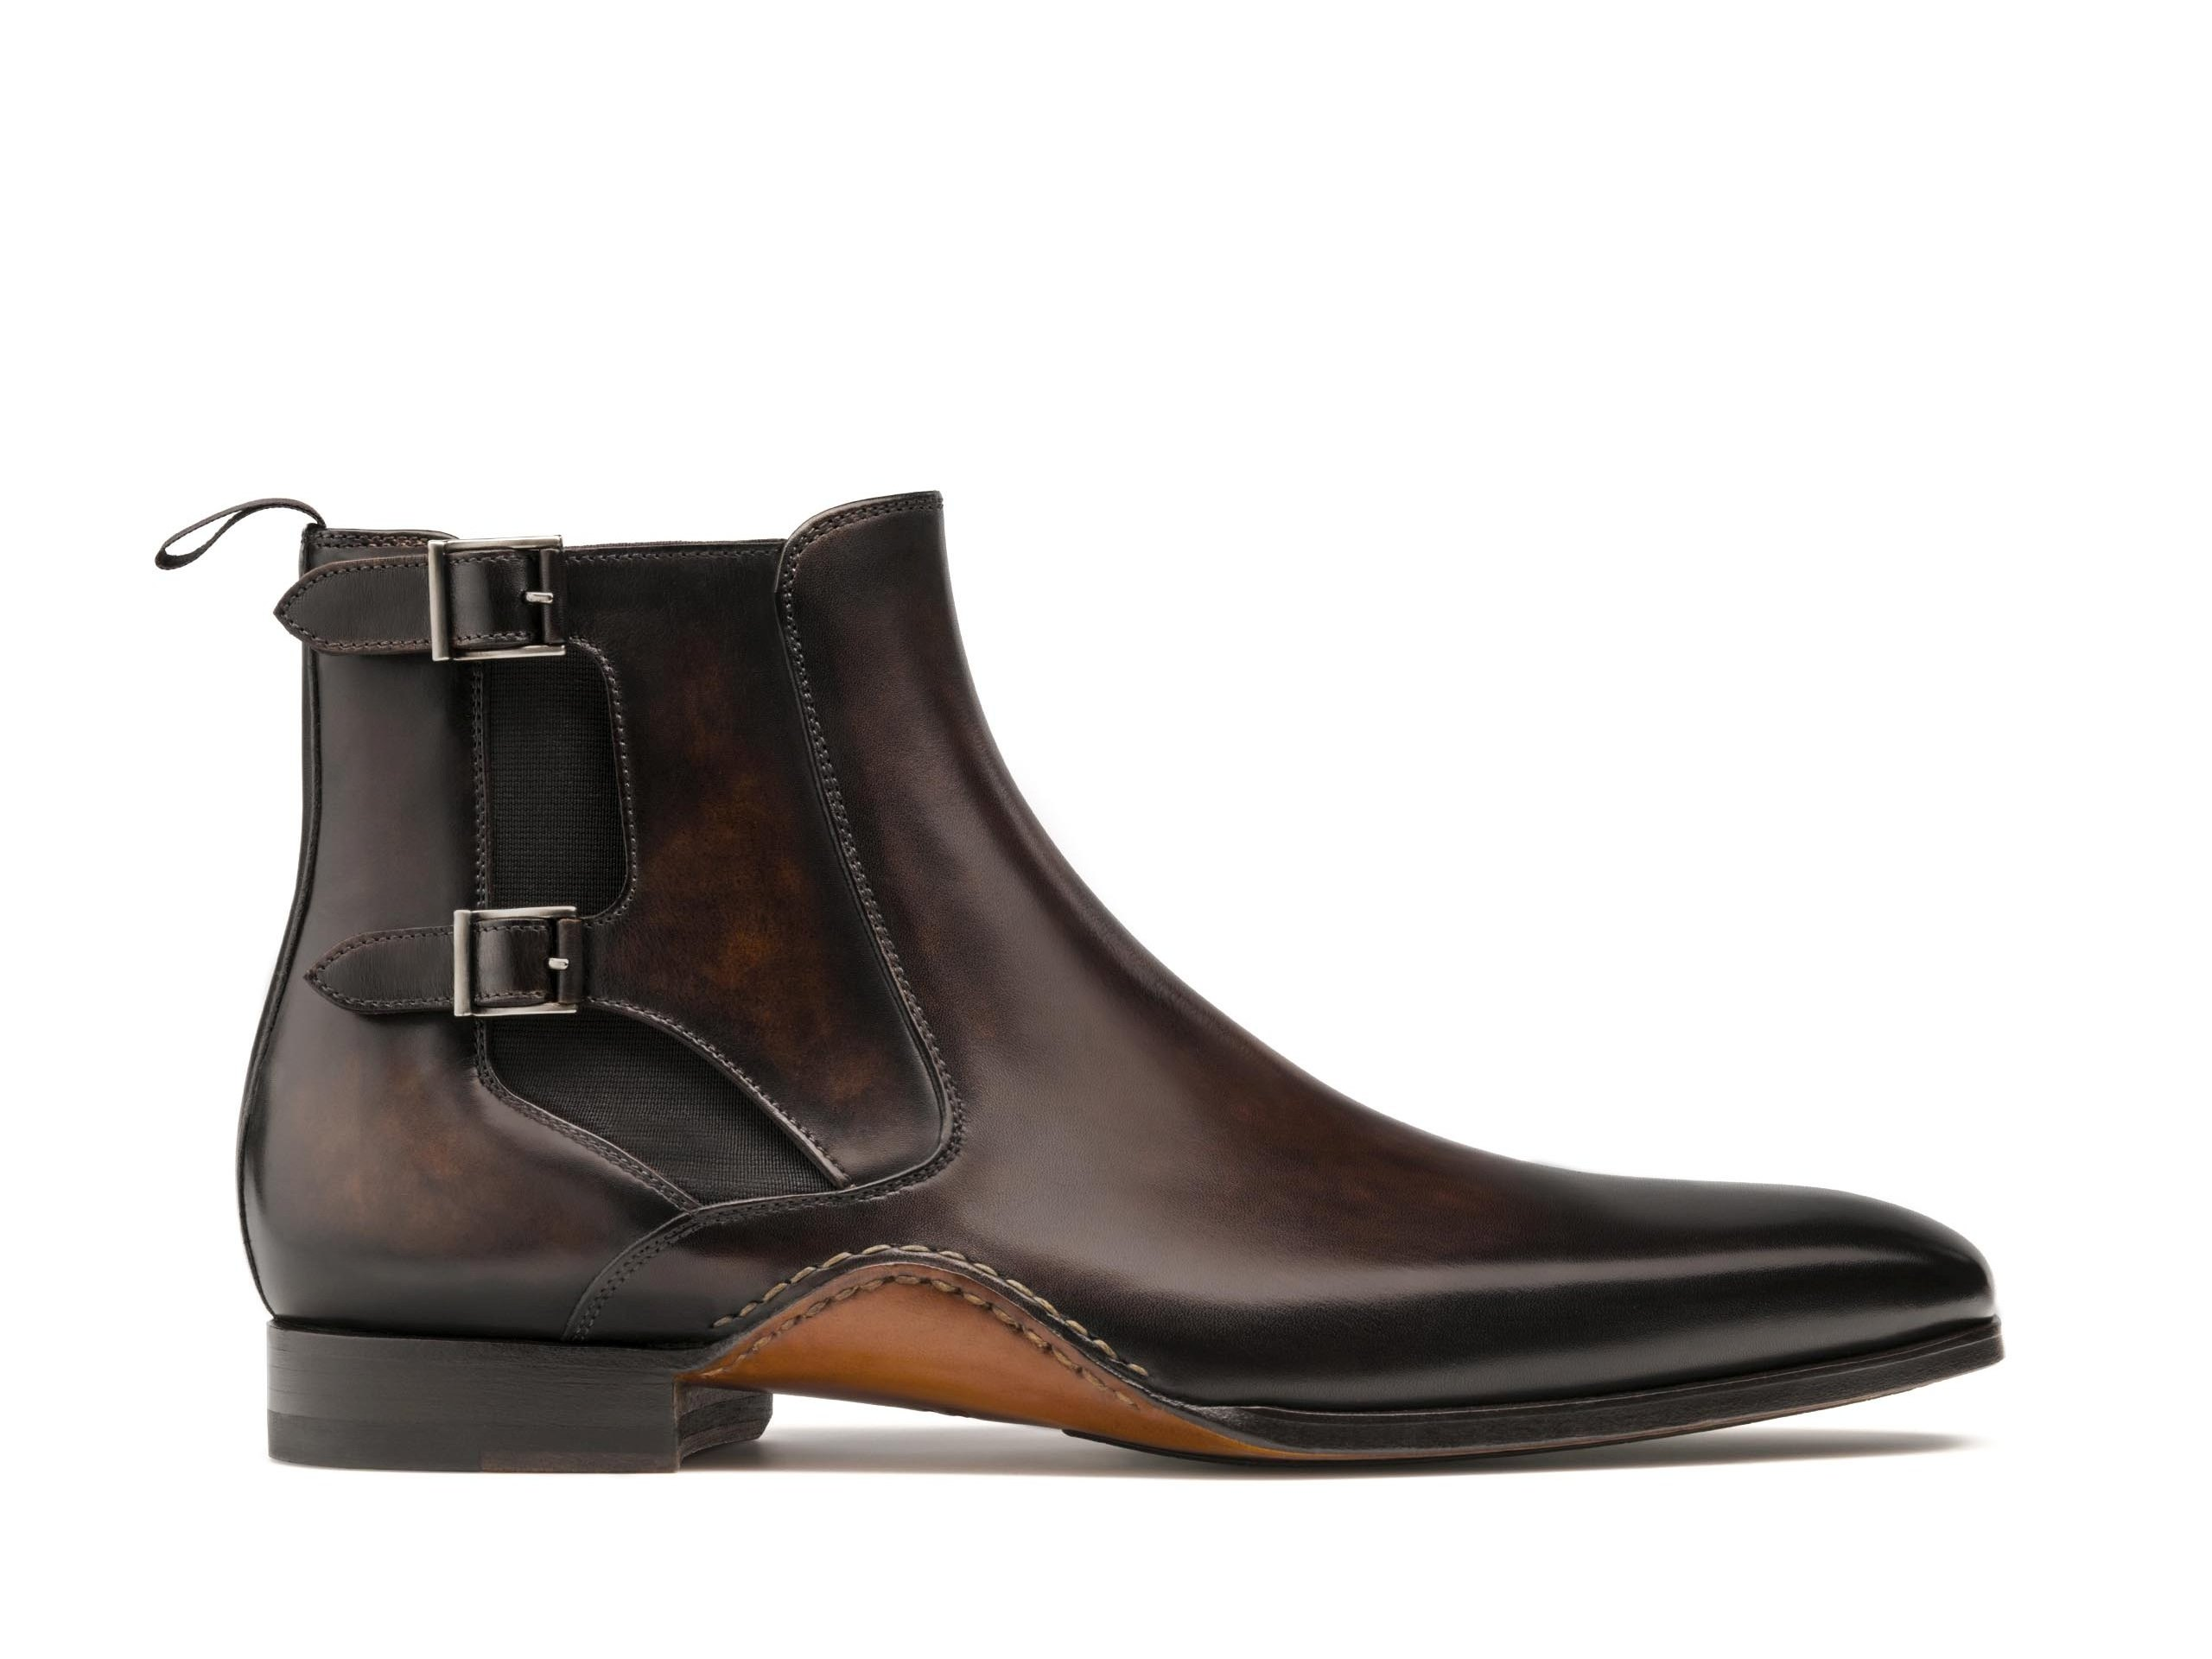 Side view of the Magnanni Grant Brown Men's Leather Chelsea Boots